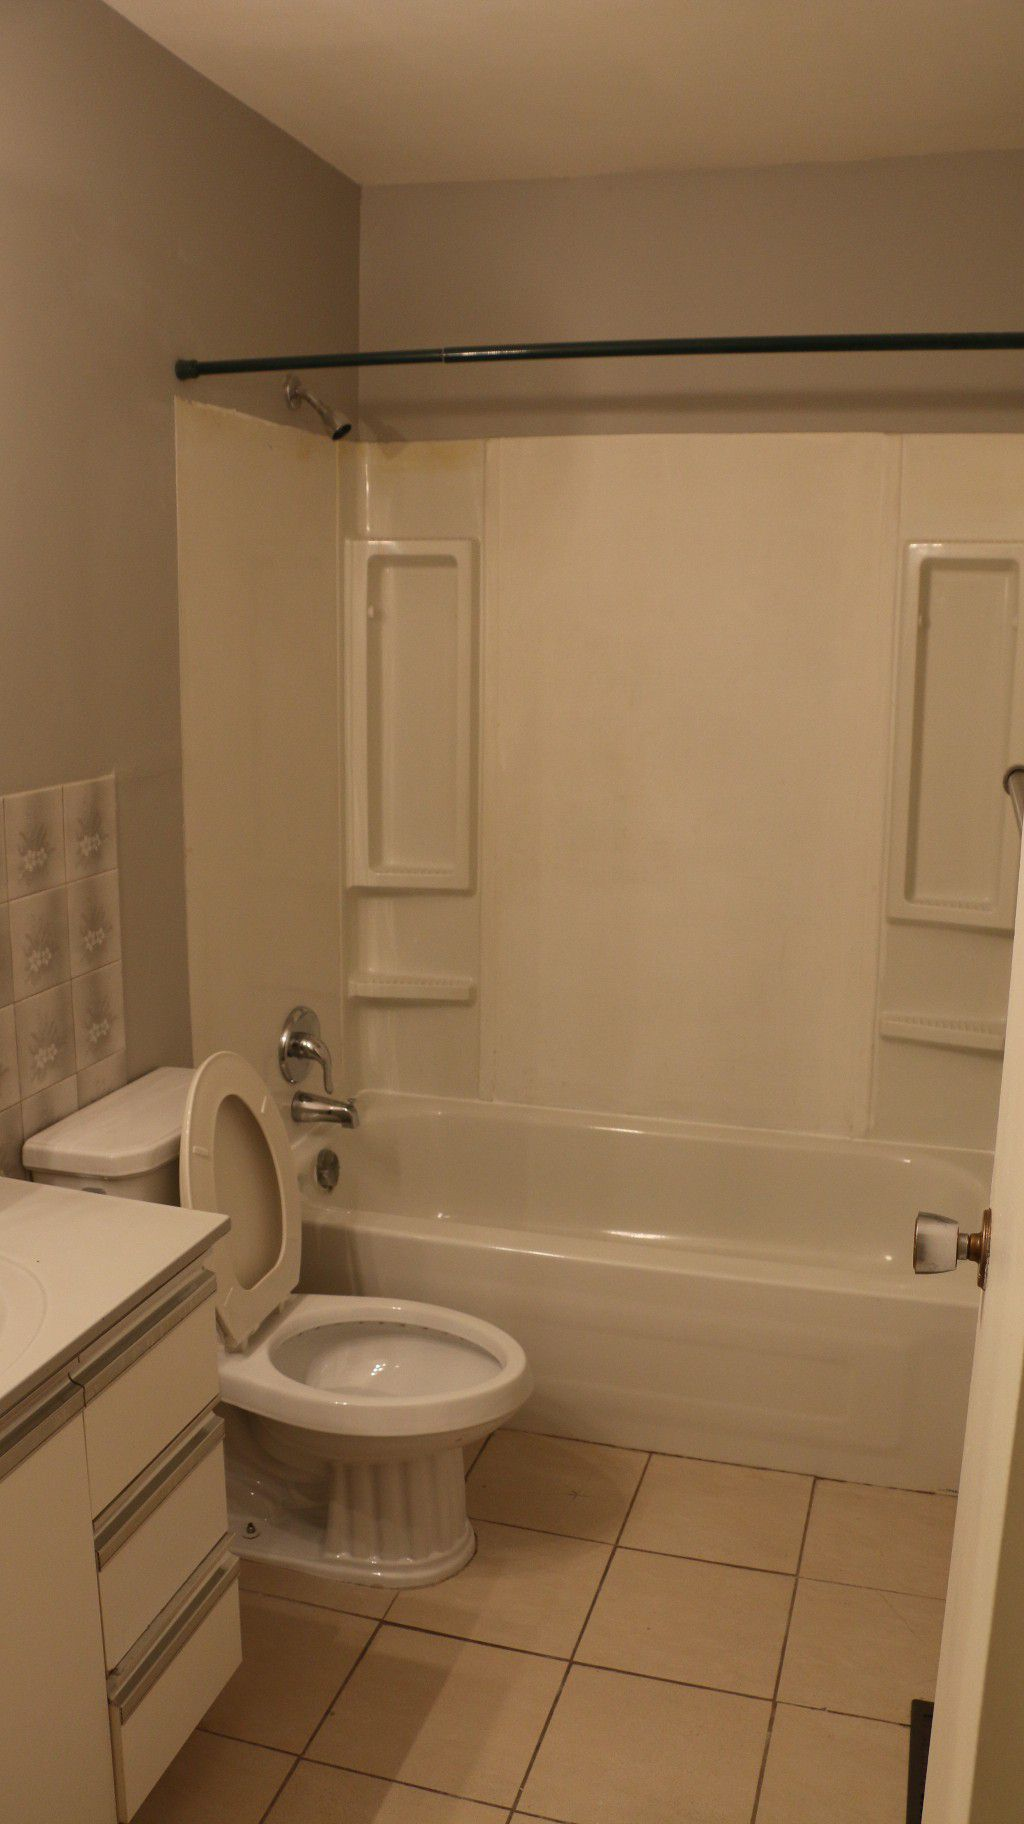 Photo 5: Photos: 767 Sheppard Street in Winnipeg: Single Family Attached for sale (Maples)  : MLS®# 1429333